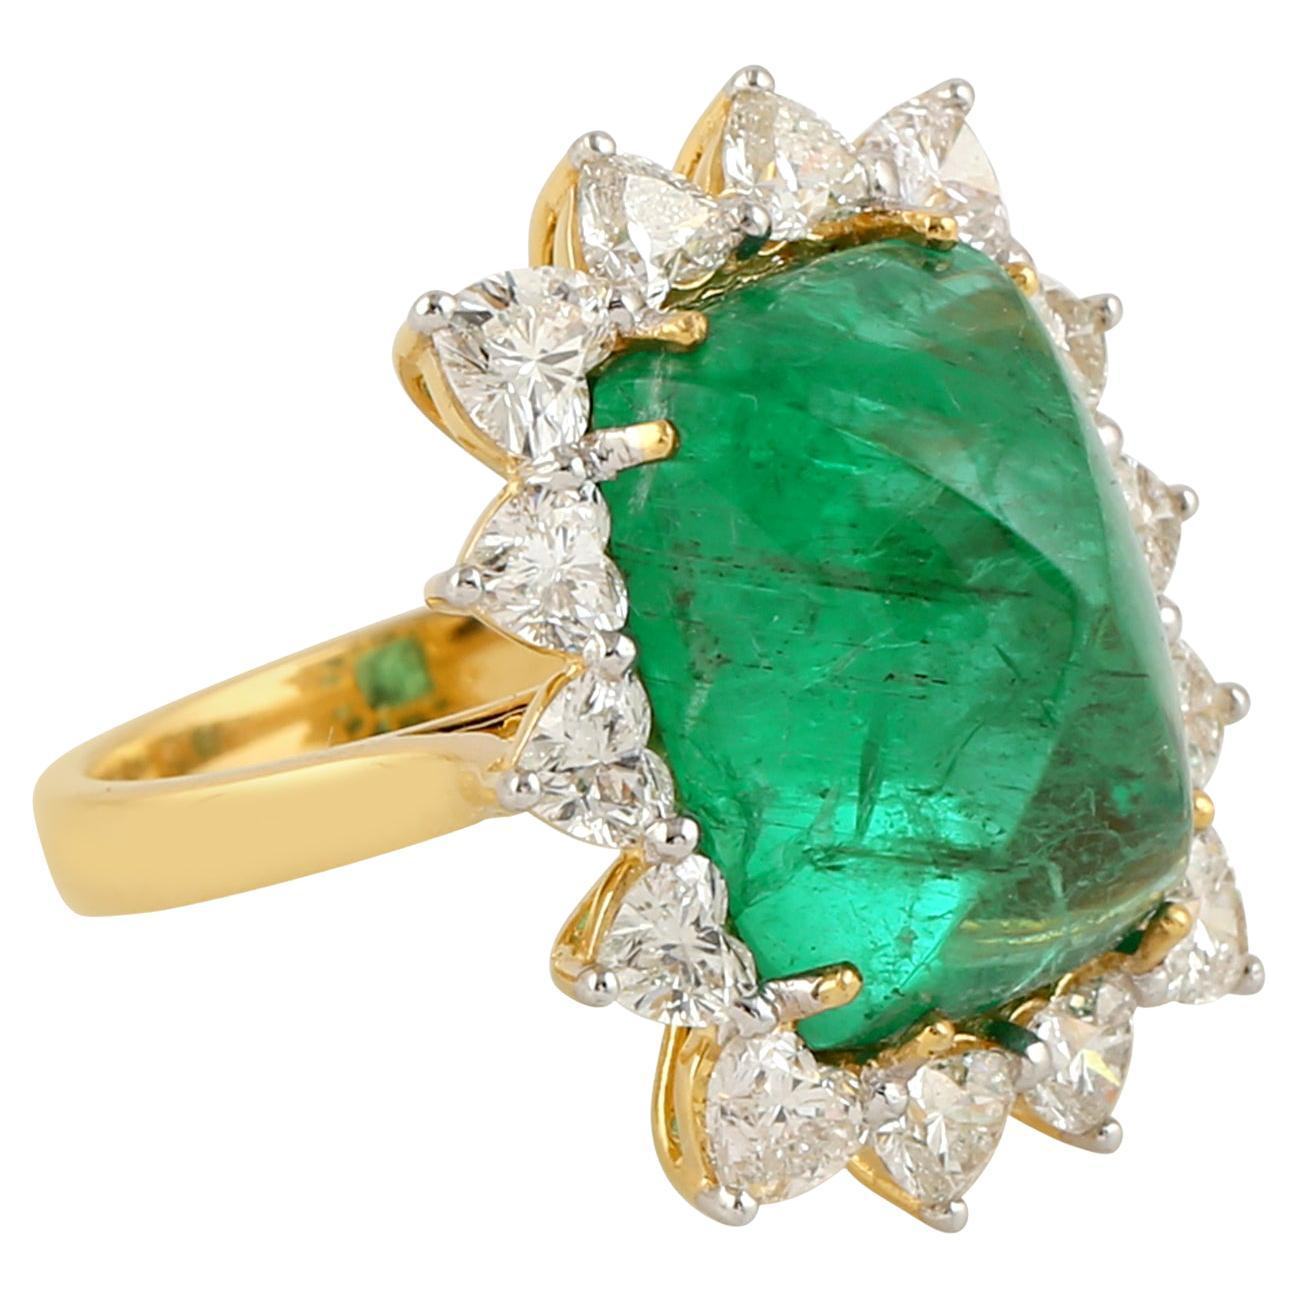 Sugar Loaf Cut Emerald and Heart Shape Diamond Ring in 18k Yellow Gold